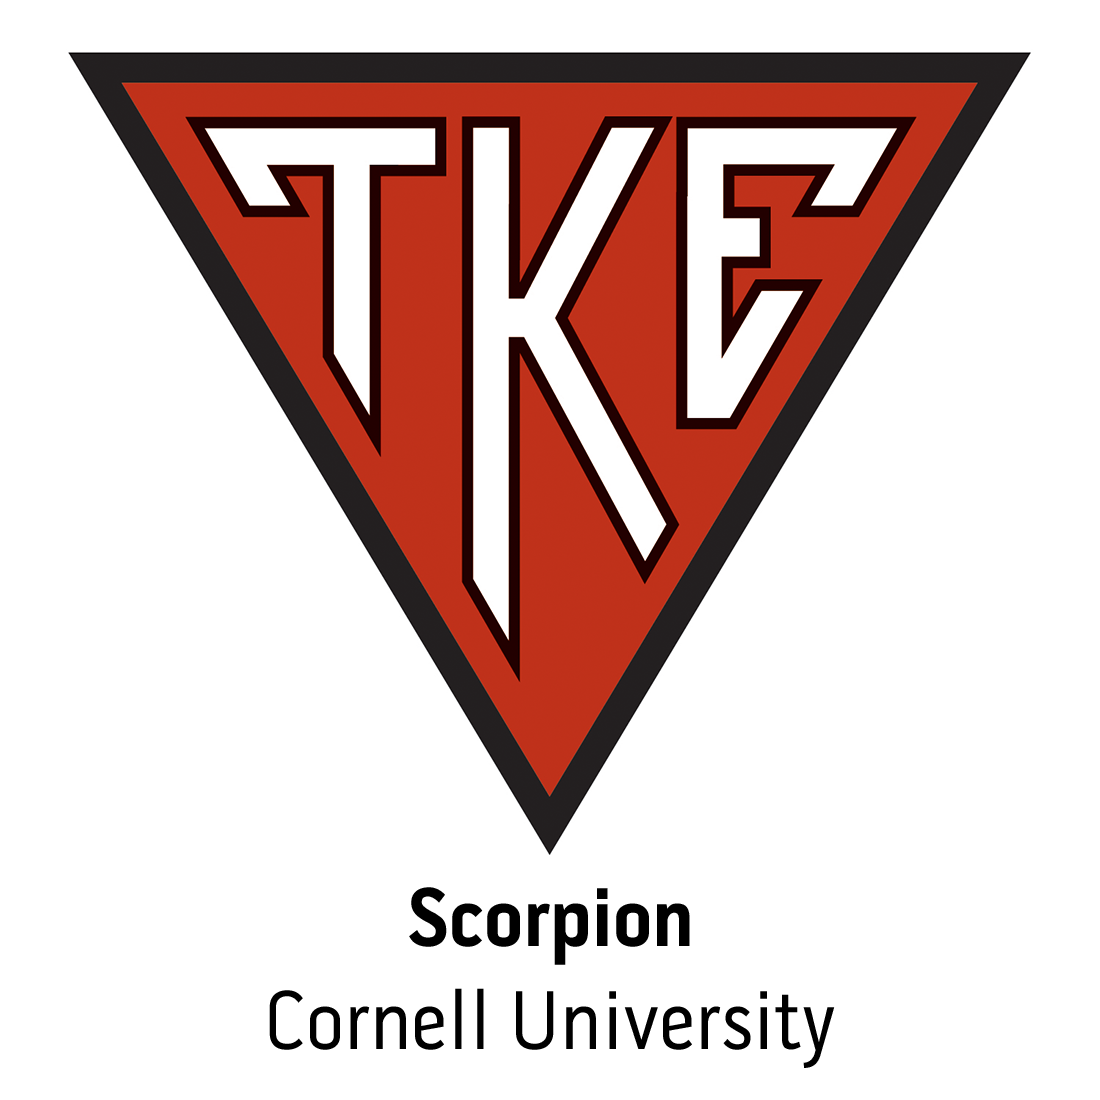 Scorpion Colony at Cornell University